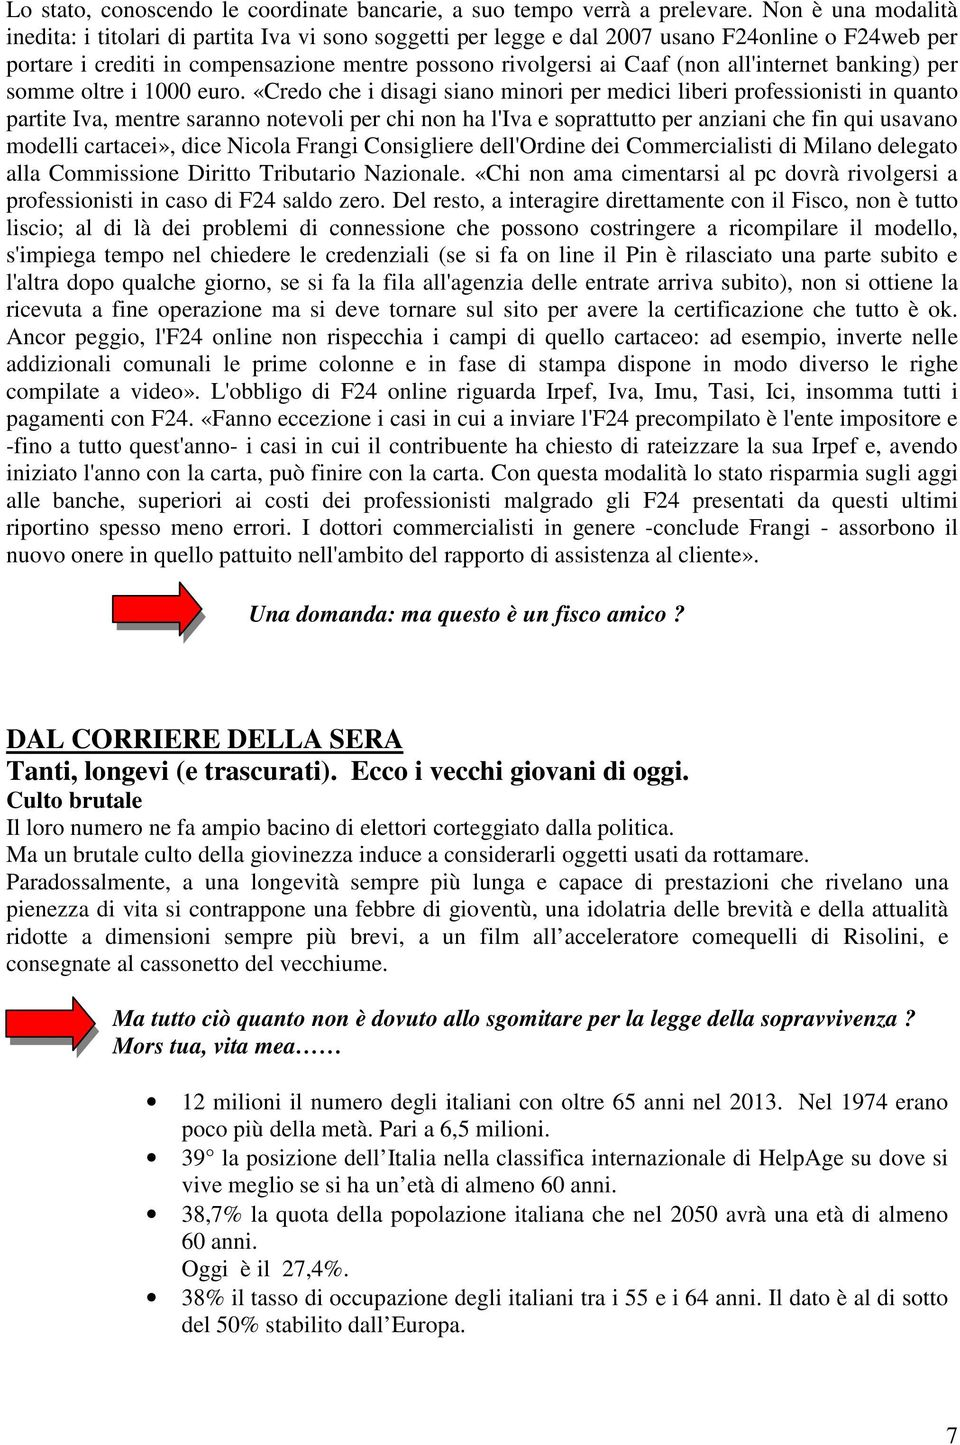 all'internet banking) per somme oltre i 1000 euro.